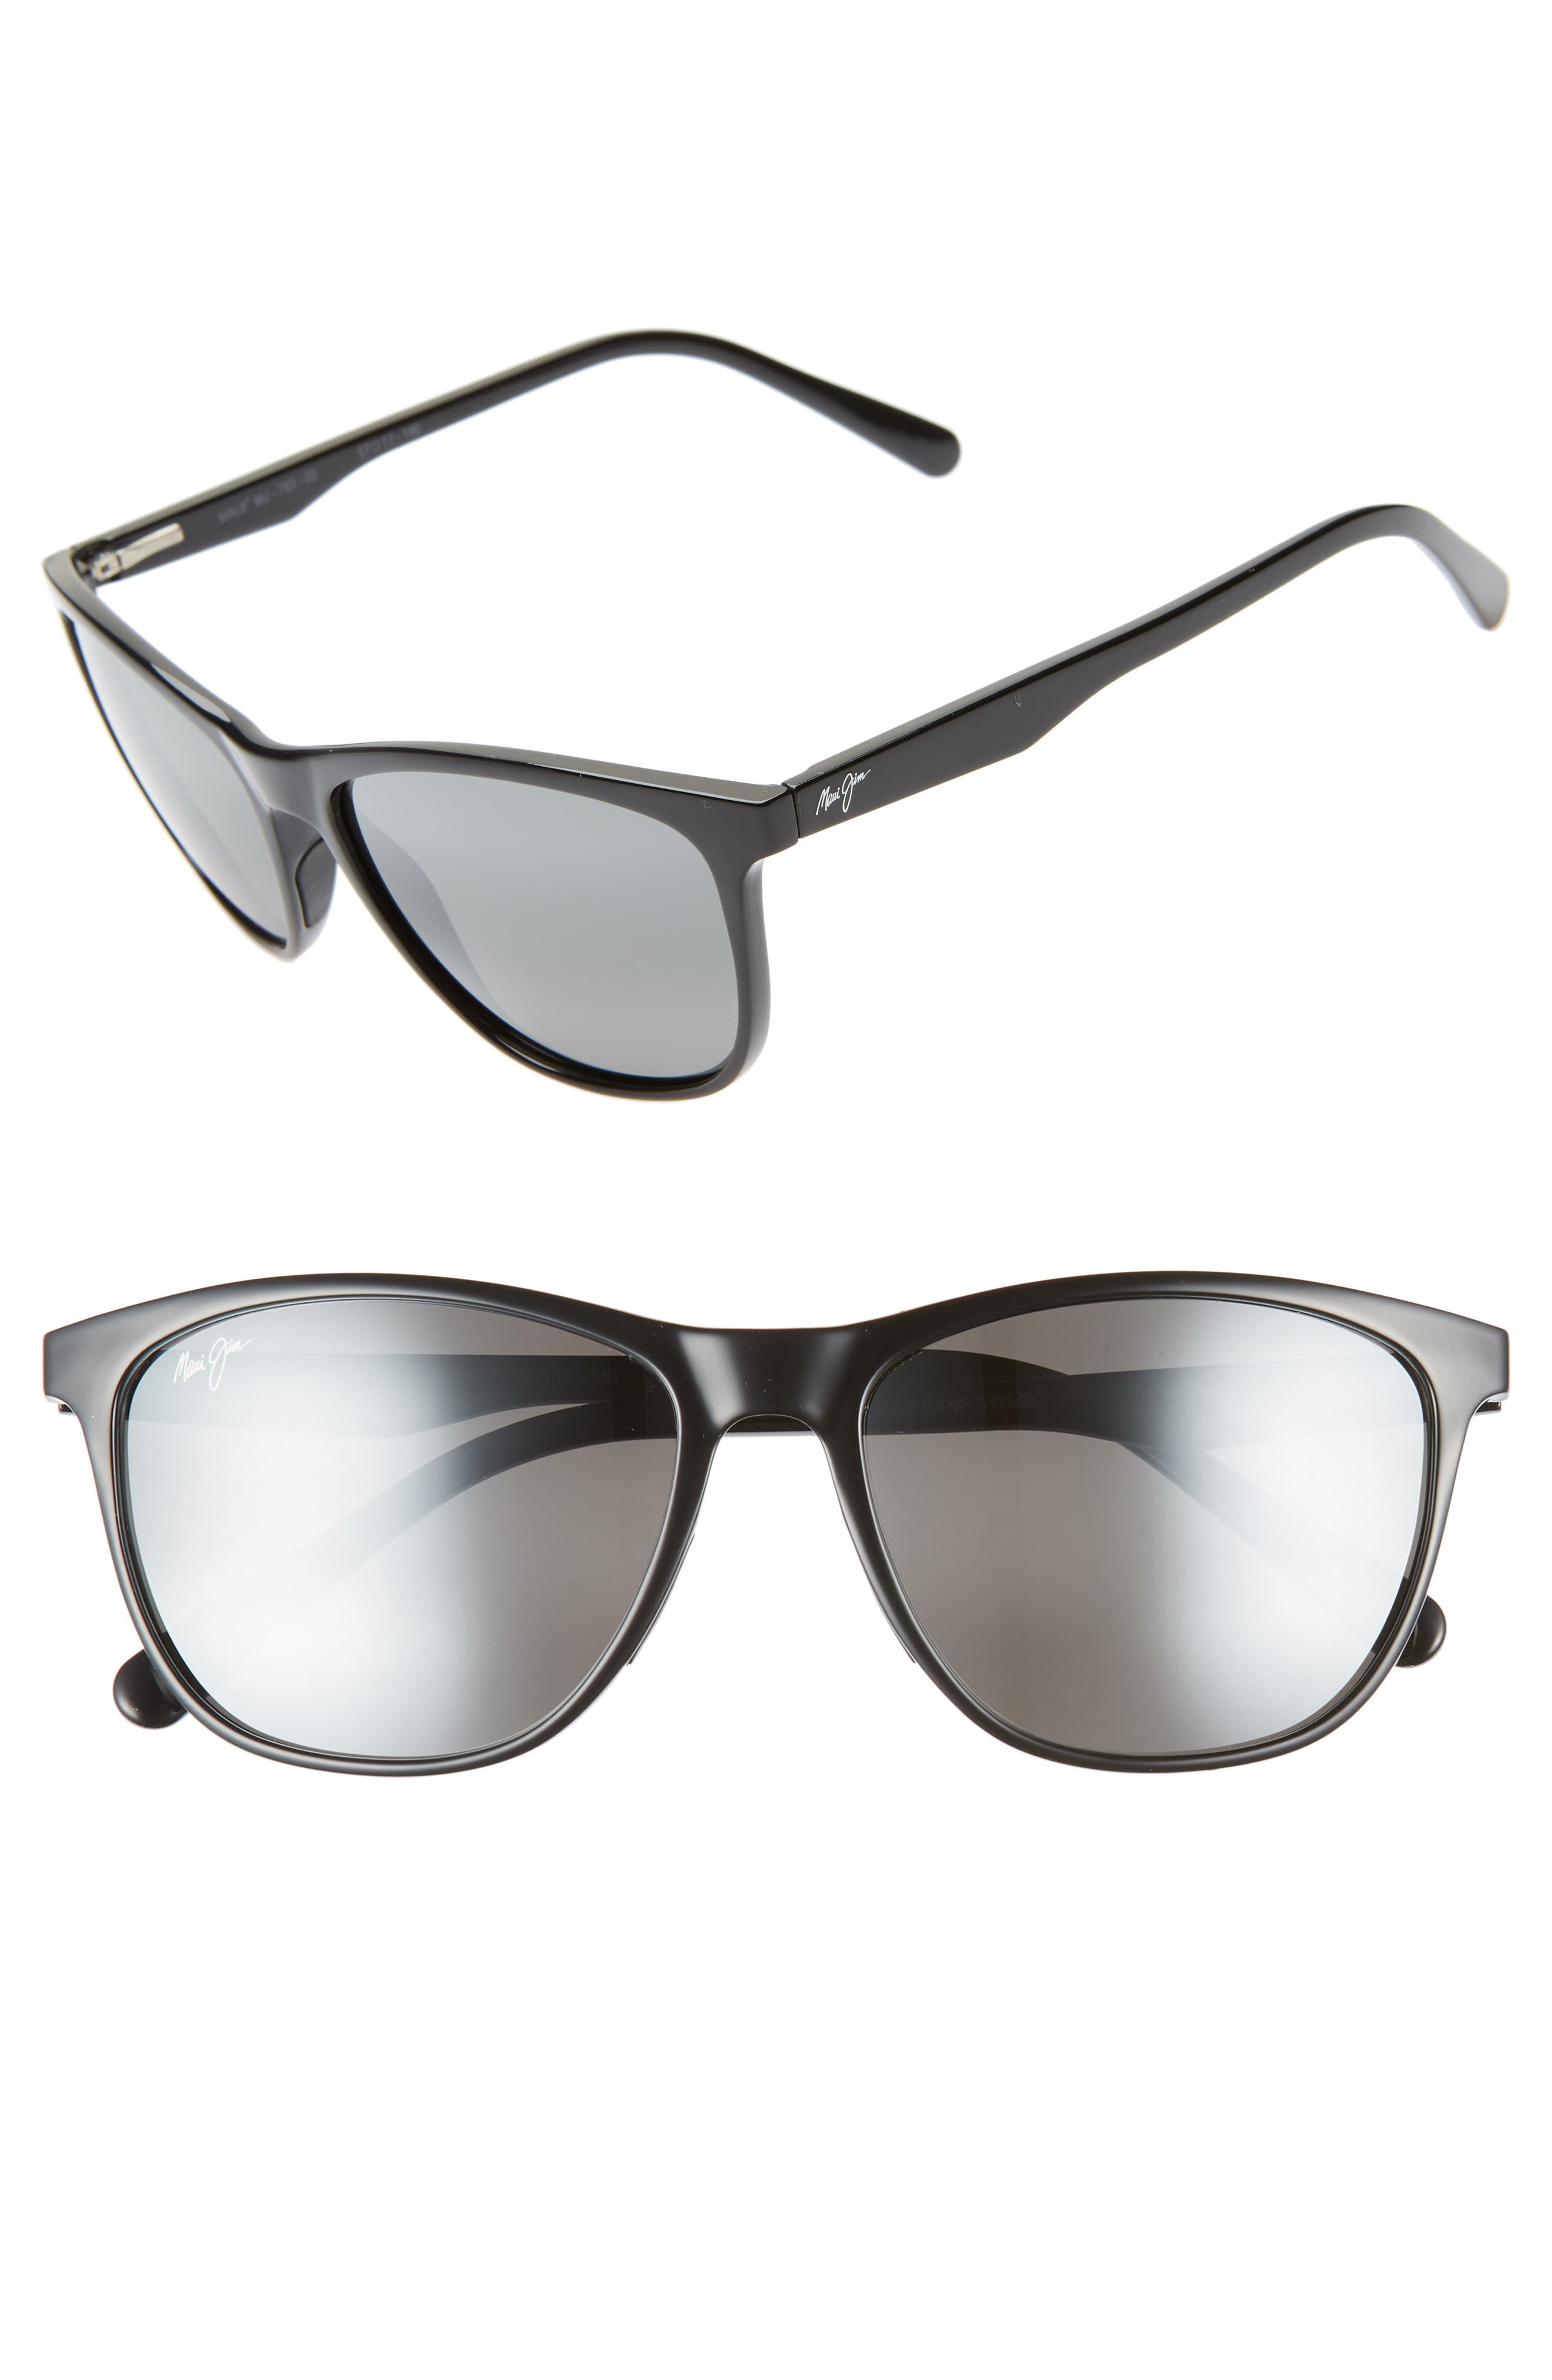 Sugar Cane 57Mm Polarizedplus2 Sunglasses - Gloss Black/ Neutral Grey